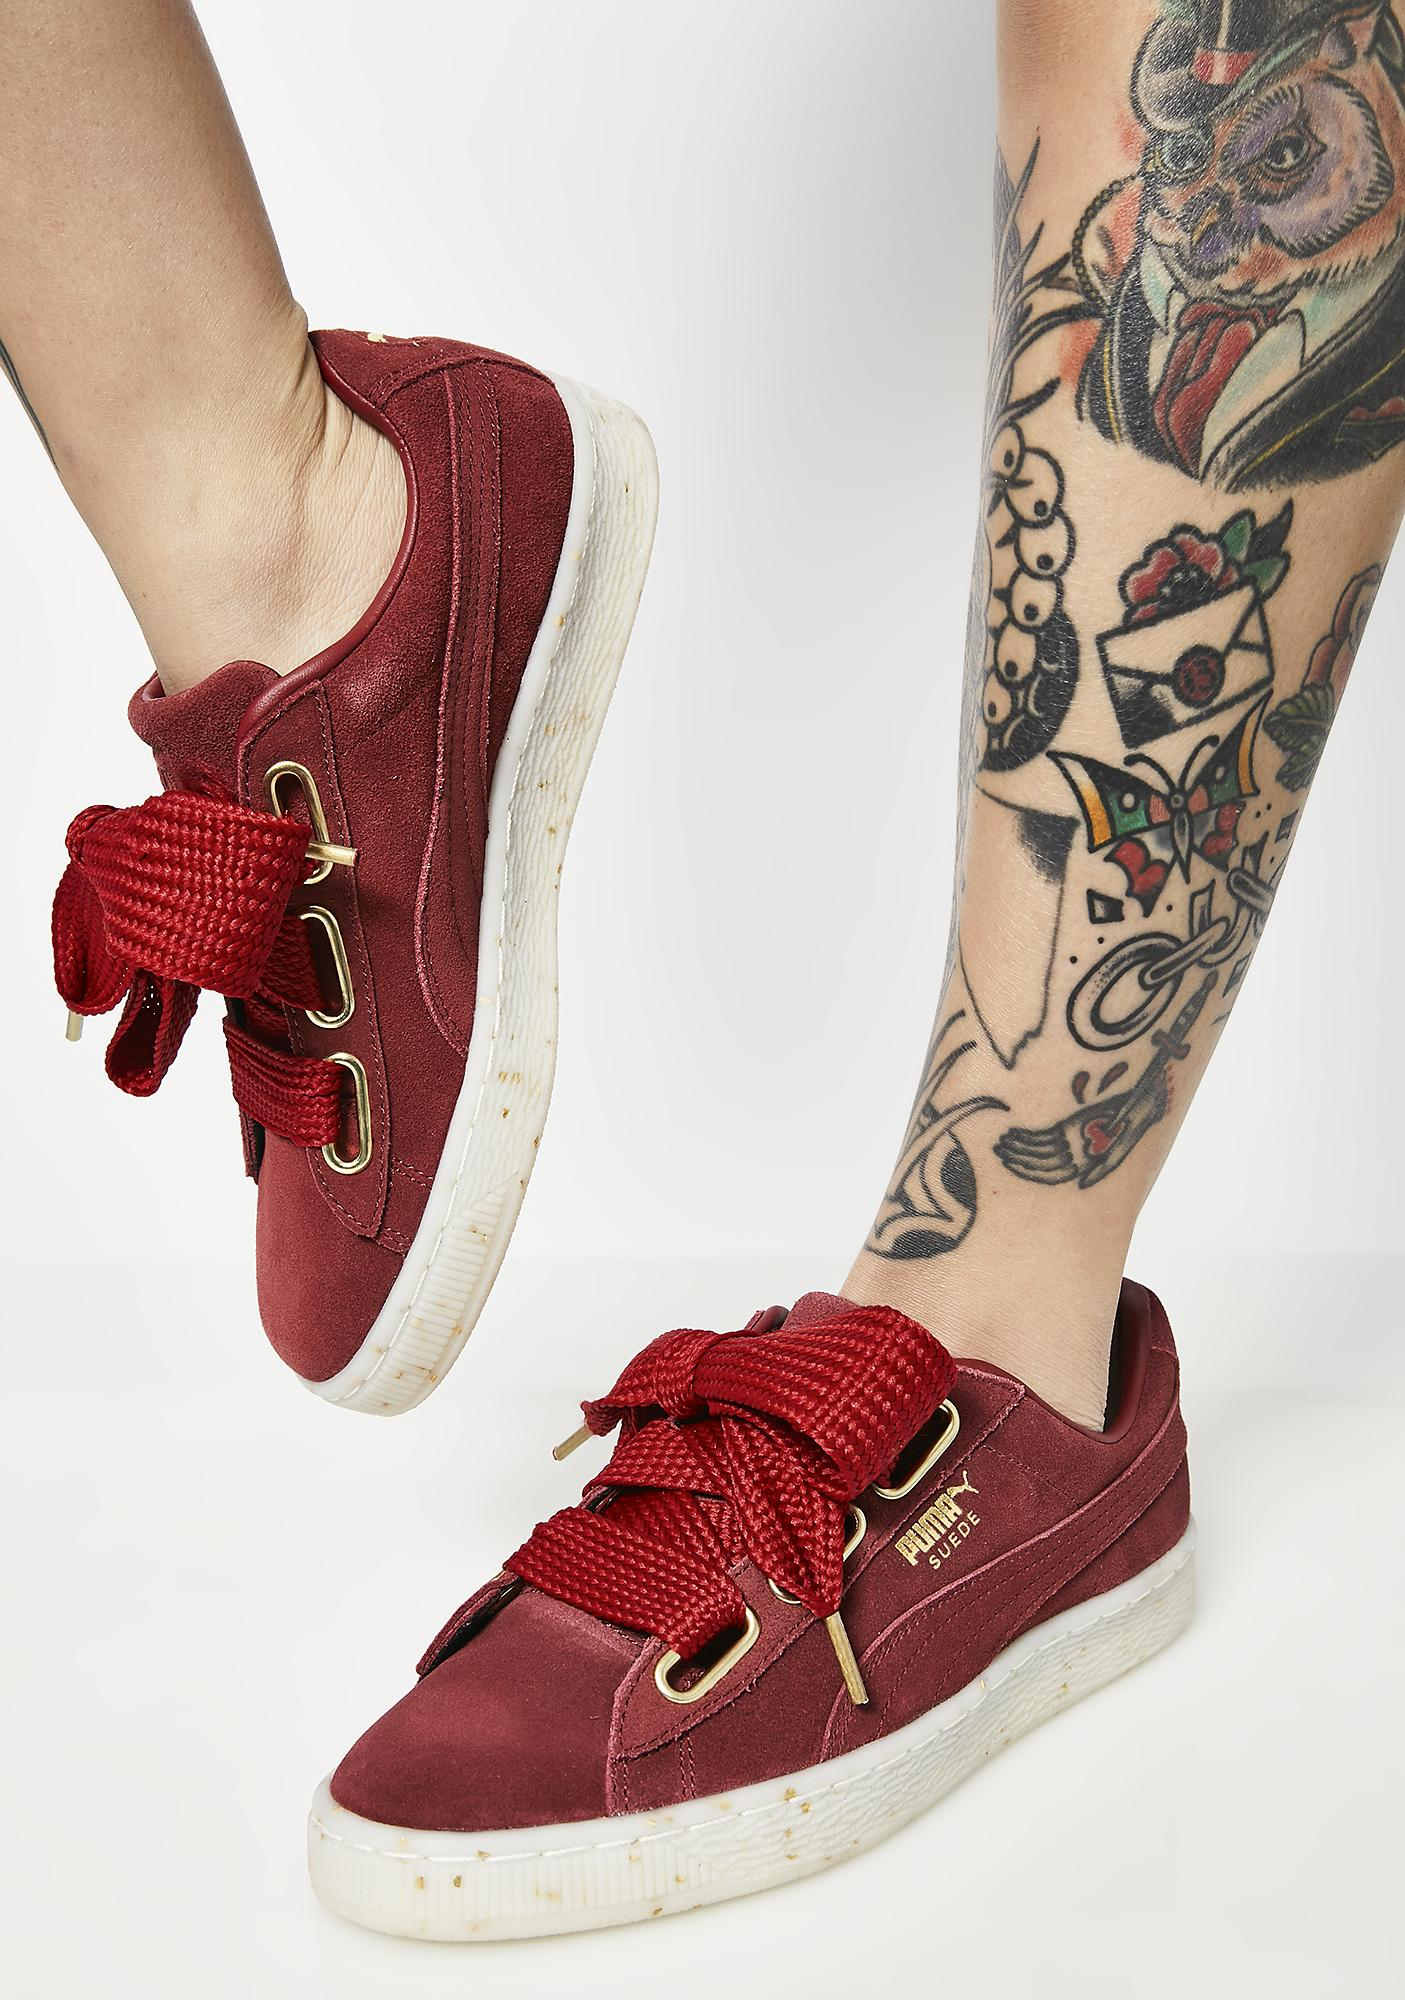 PUMA Suede Heart Fab Sneakers